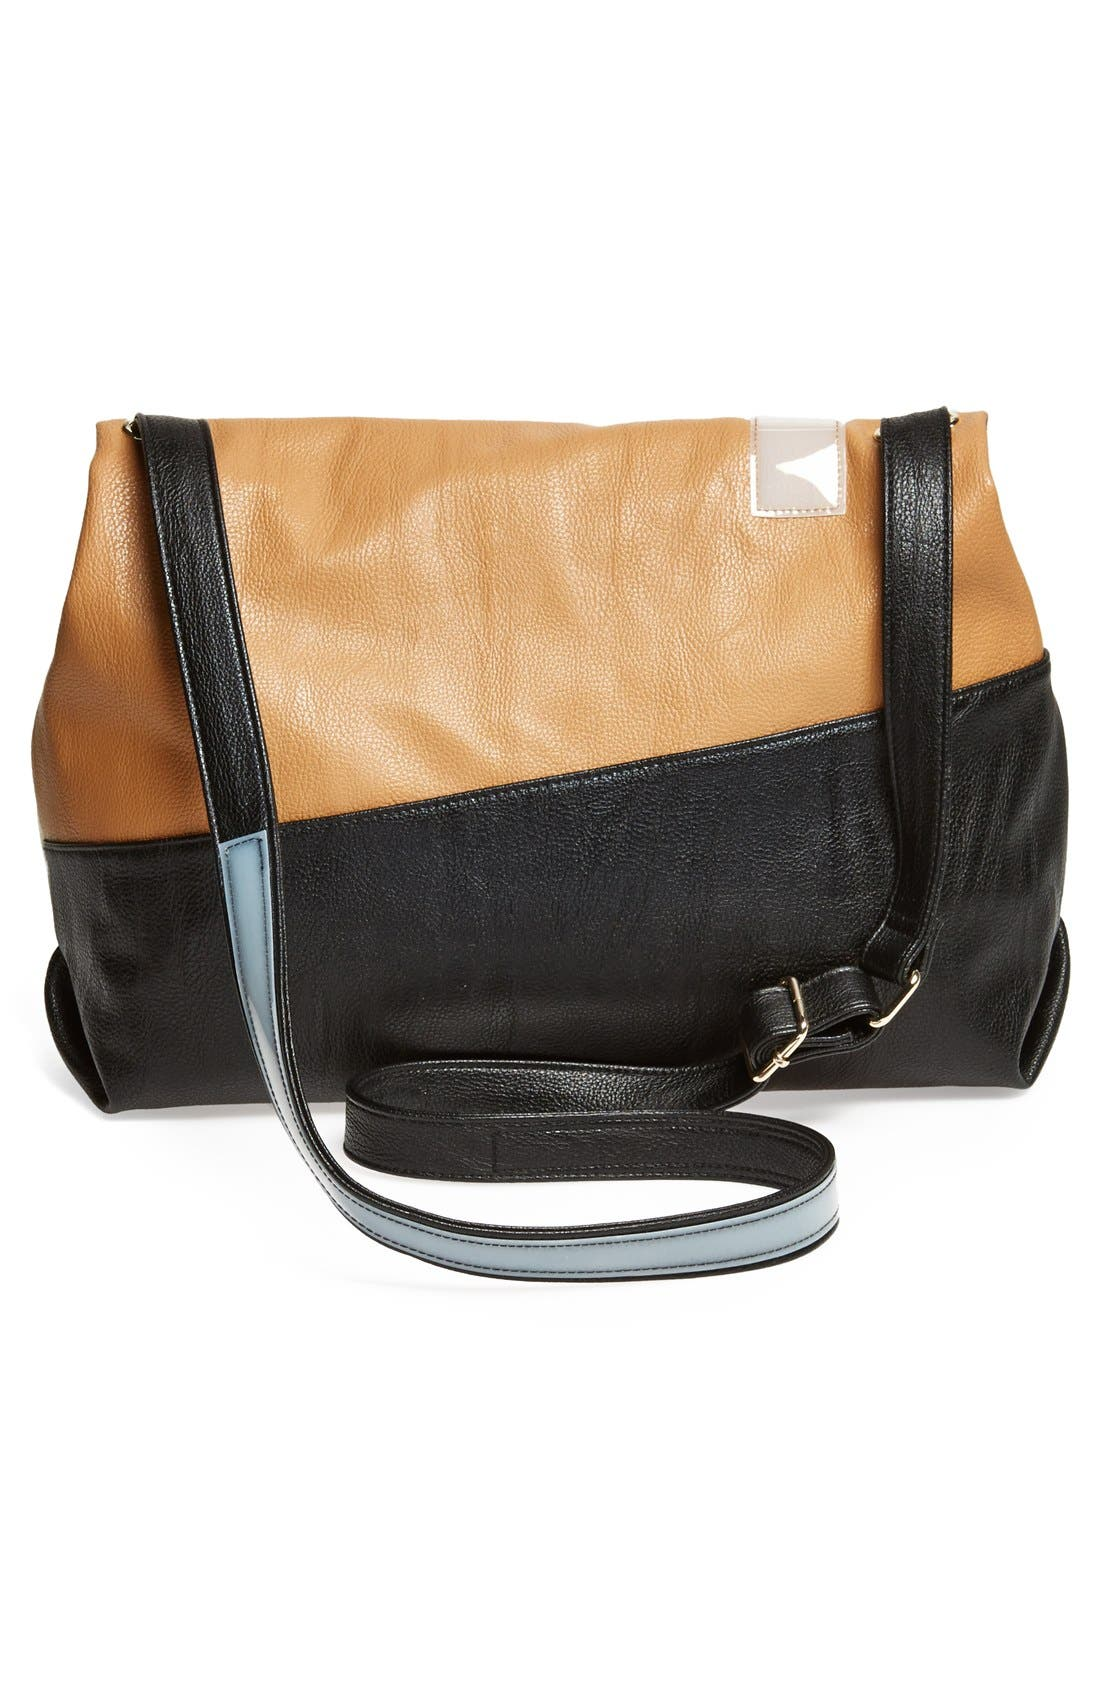 Alternate Image 3  - POVERTY FLATS by rian 'Large' Asymmetrical Faux Leather Crossbody Bag